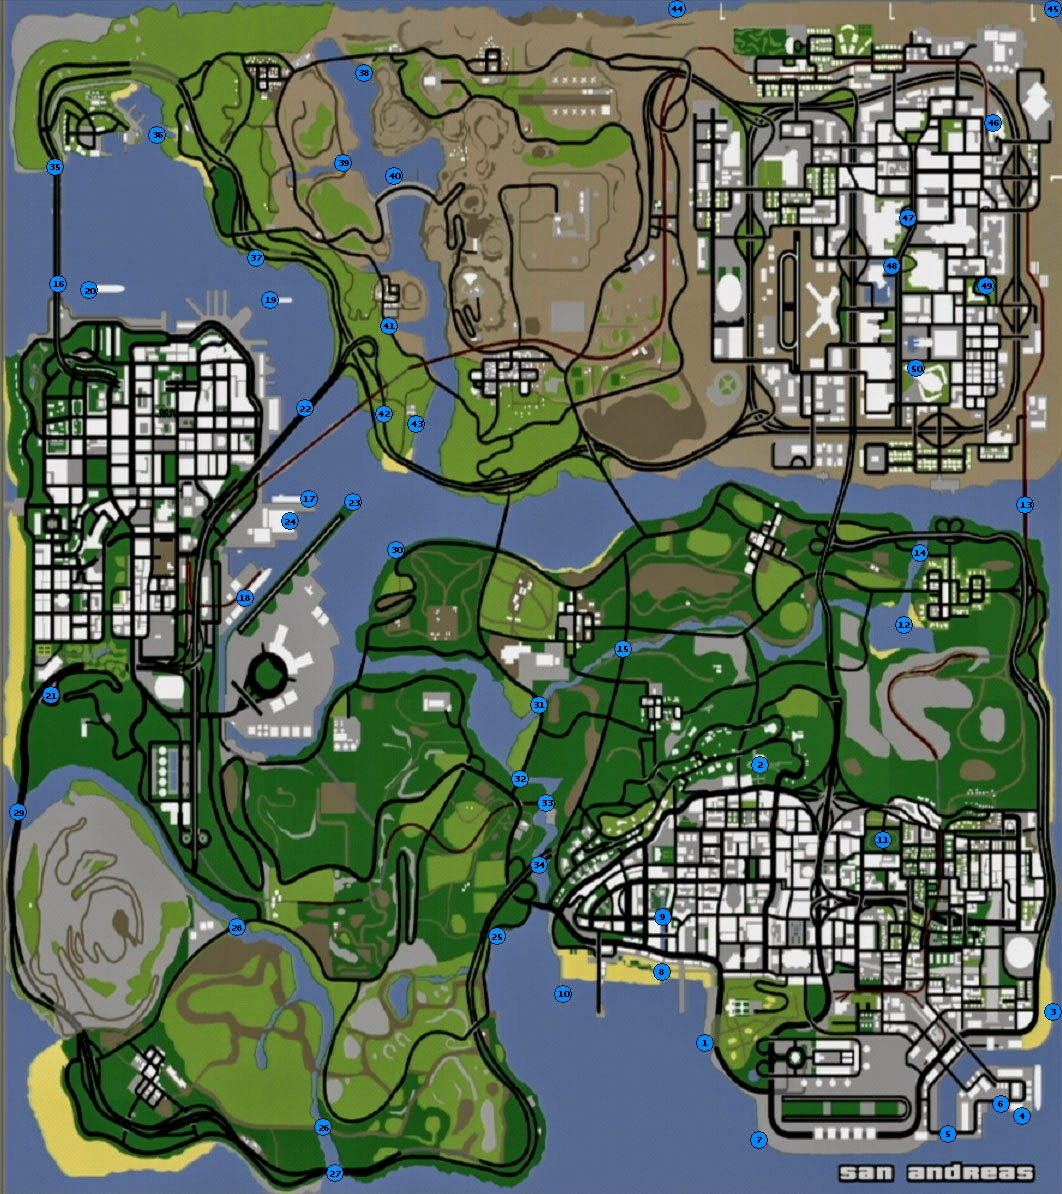 Mapa das ostras do GTA SAN ANDREAS